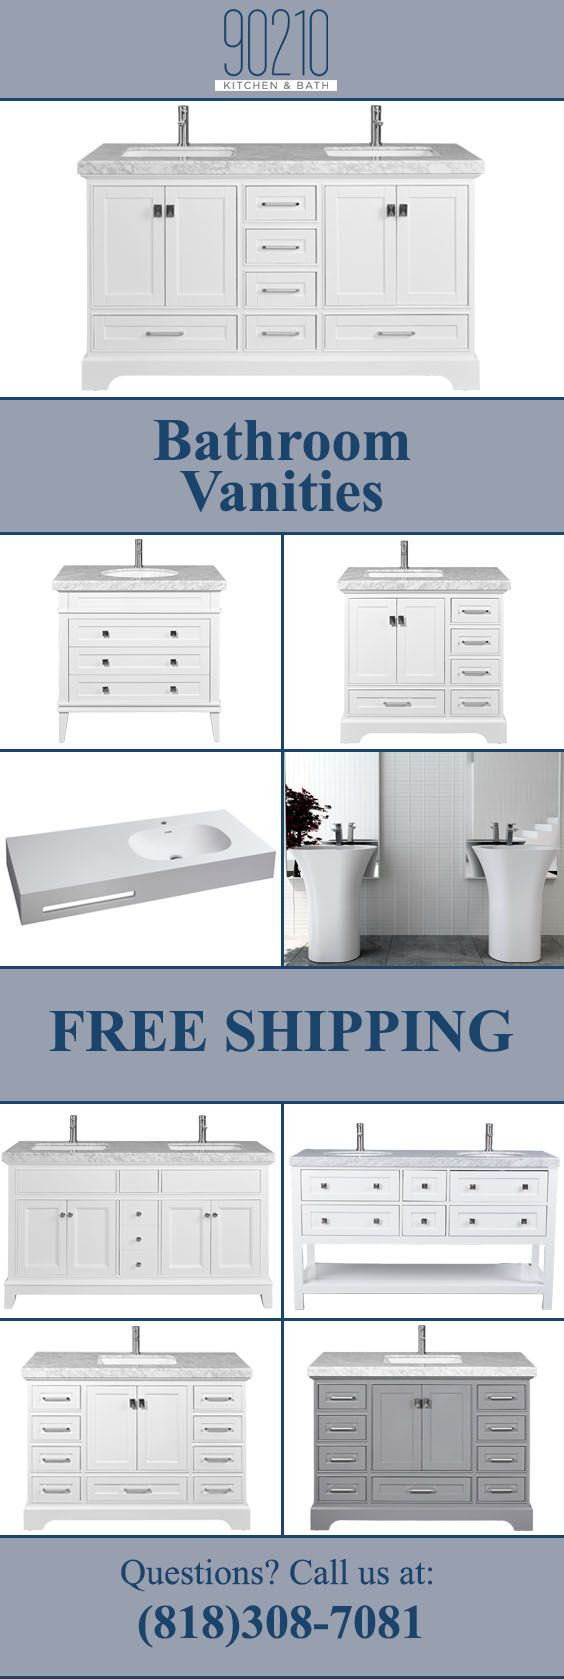 Bathroom Vanity Ideas for A Great Look At A Budget Prices Sizes